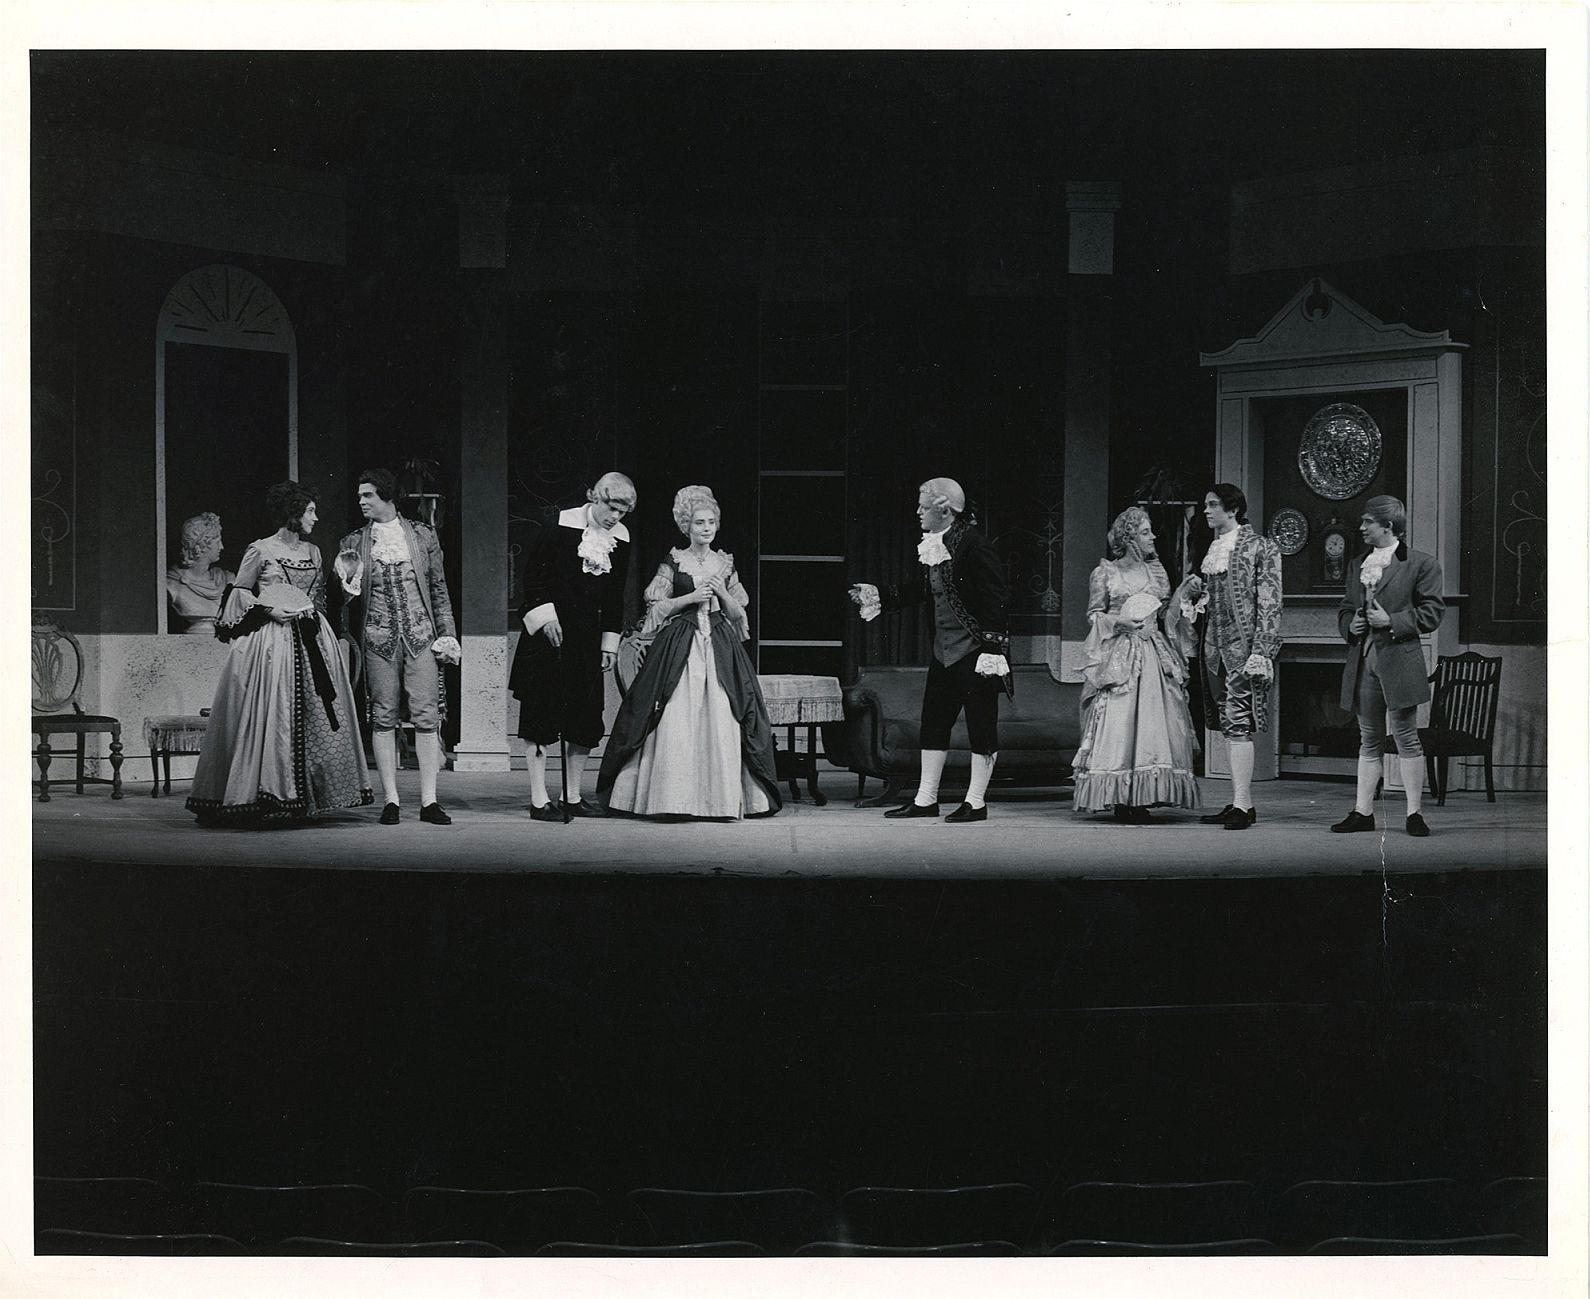 Stephenking Theatre 1967 Photo02